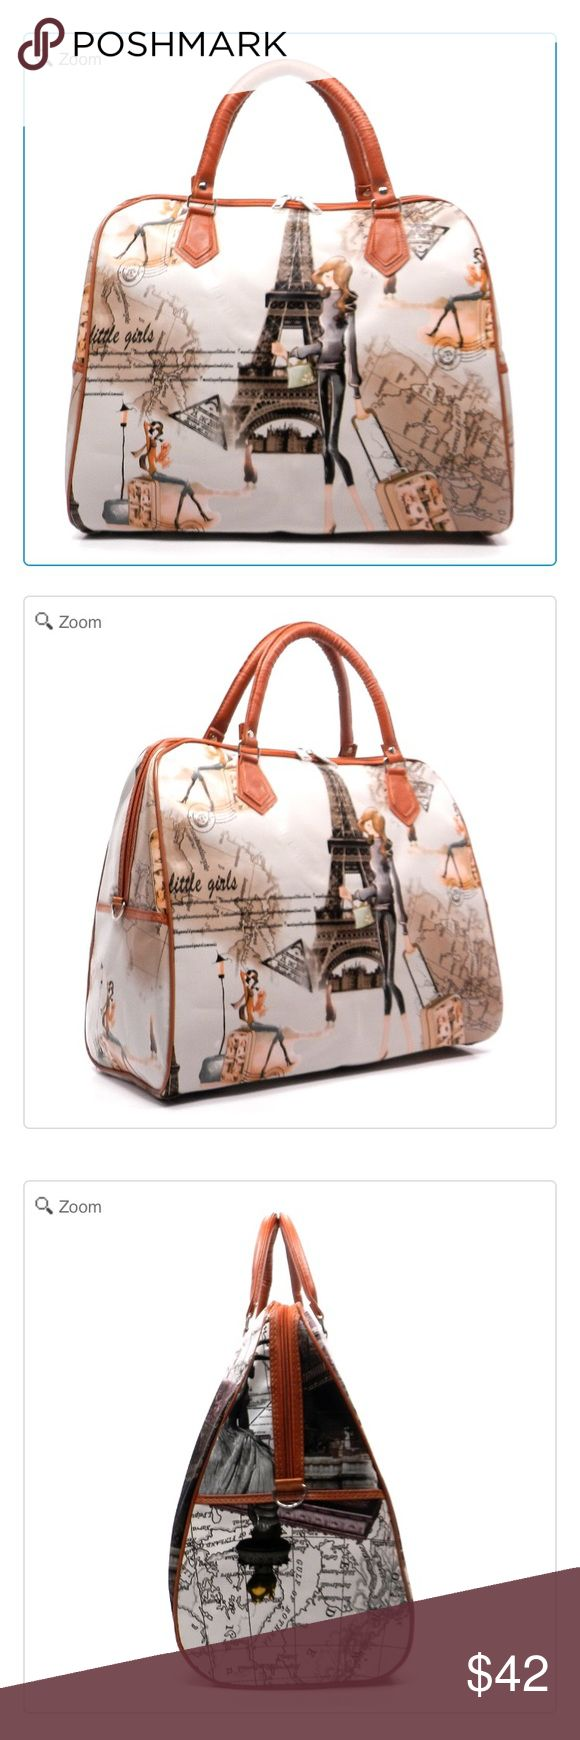 NEW Tour Illustration Weekend Tote Designer inspired handbag NeW Faux leather Zip top closure Silver-tone hardware Detachable shoulder strip L 17 * H 14 * W 7.5 (5 D) Large Size - Good for Vacation or Travel Use  Tour Illustration Overnight Weekend Tote: Eiffel Tower-Tan Brown Color Bags Travel Bags